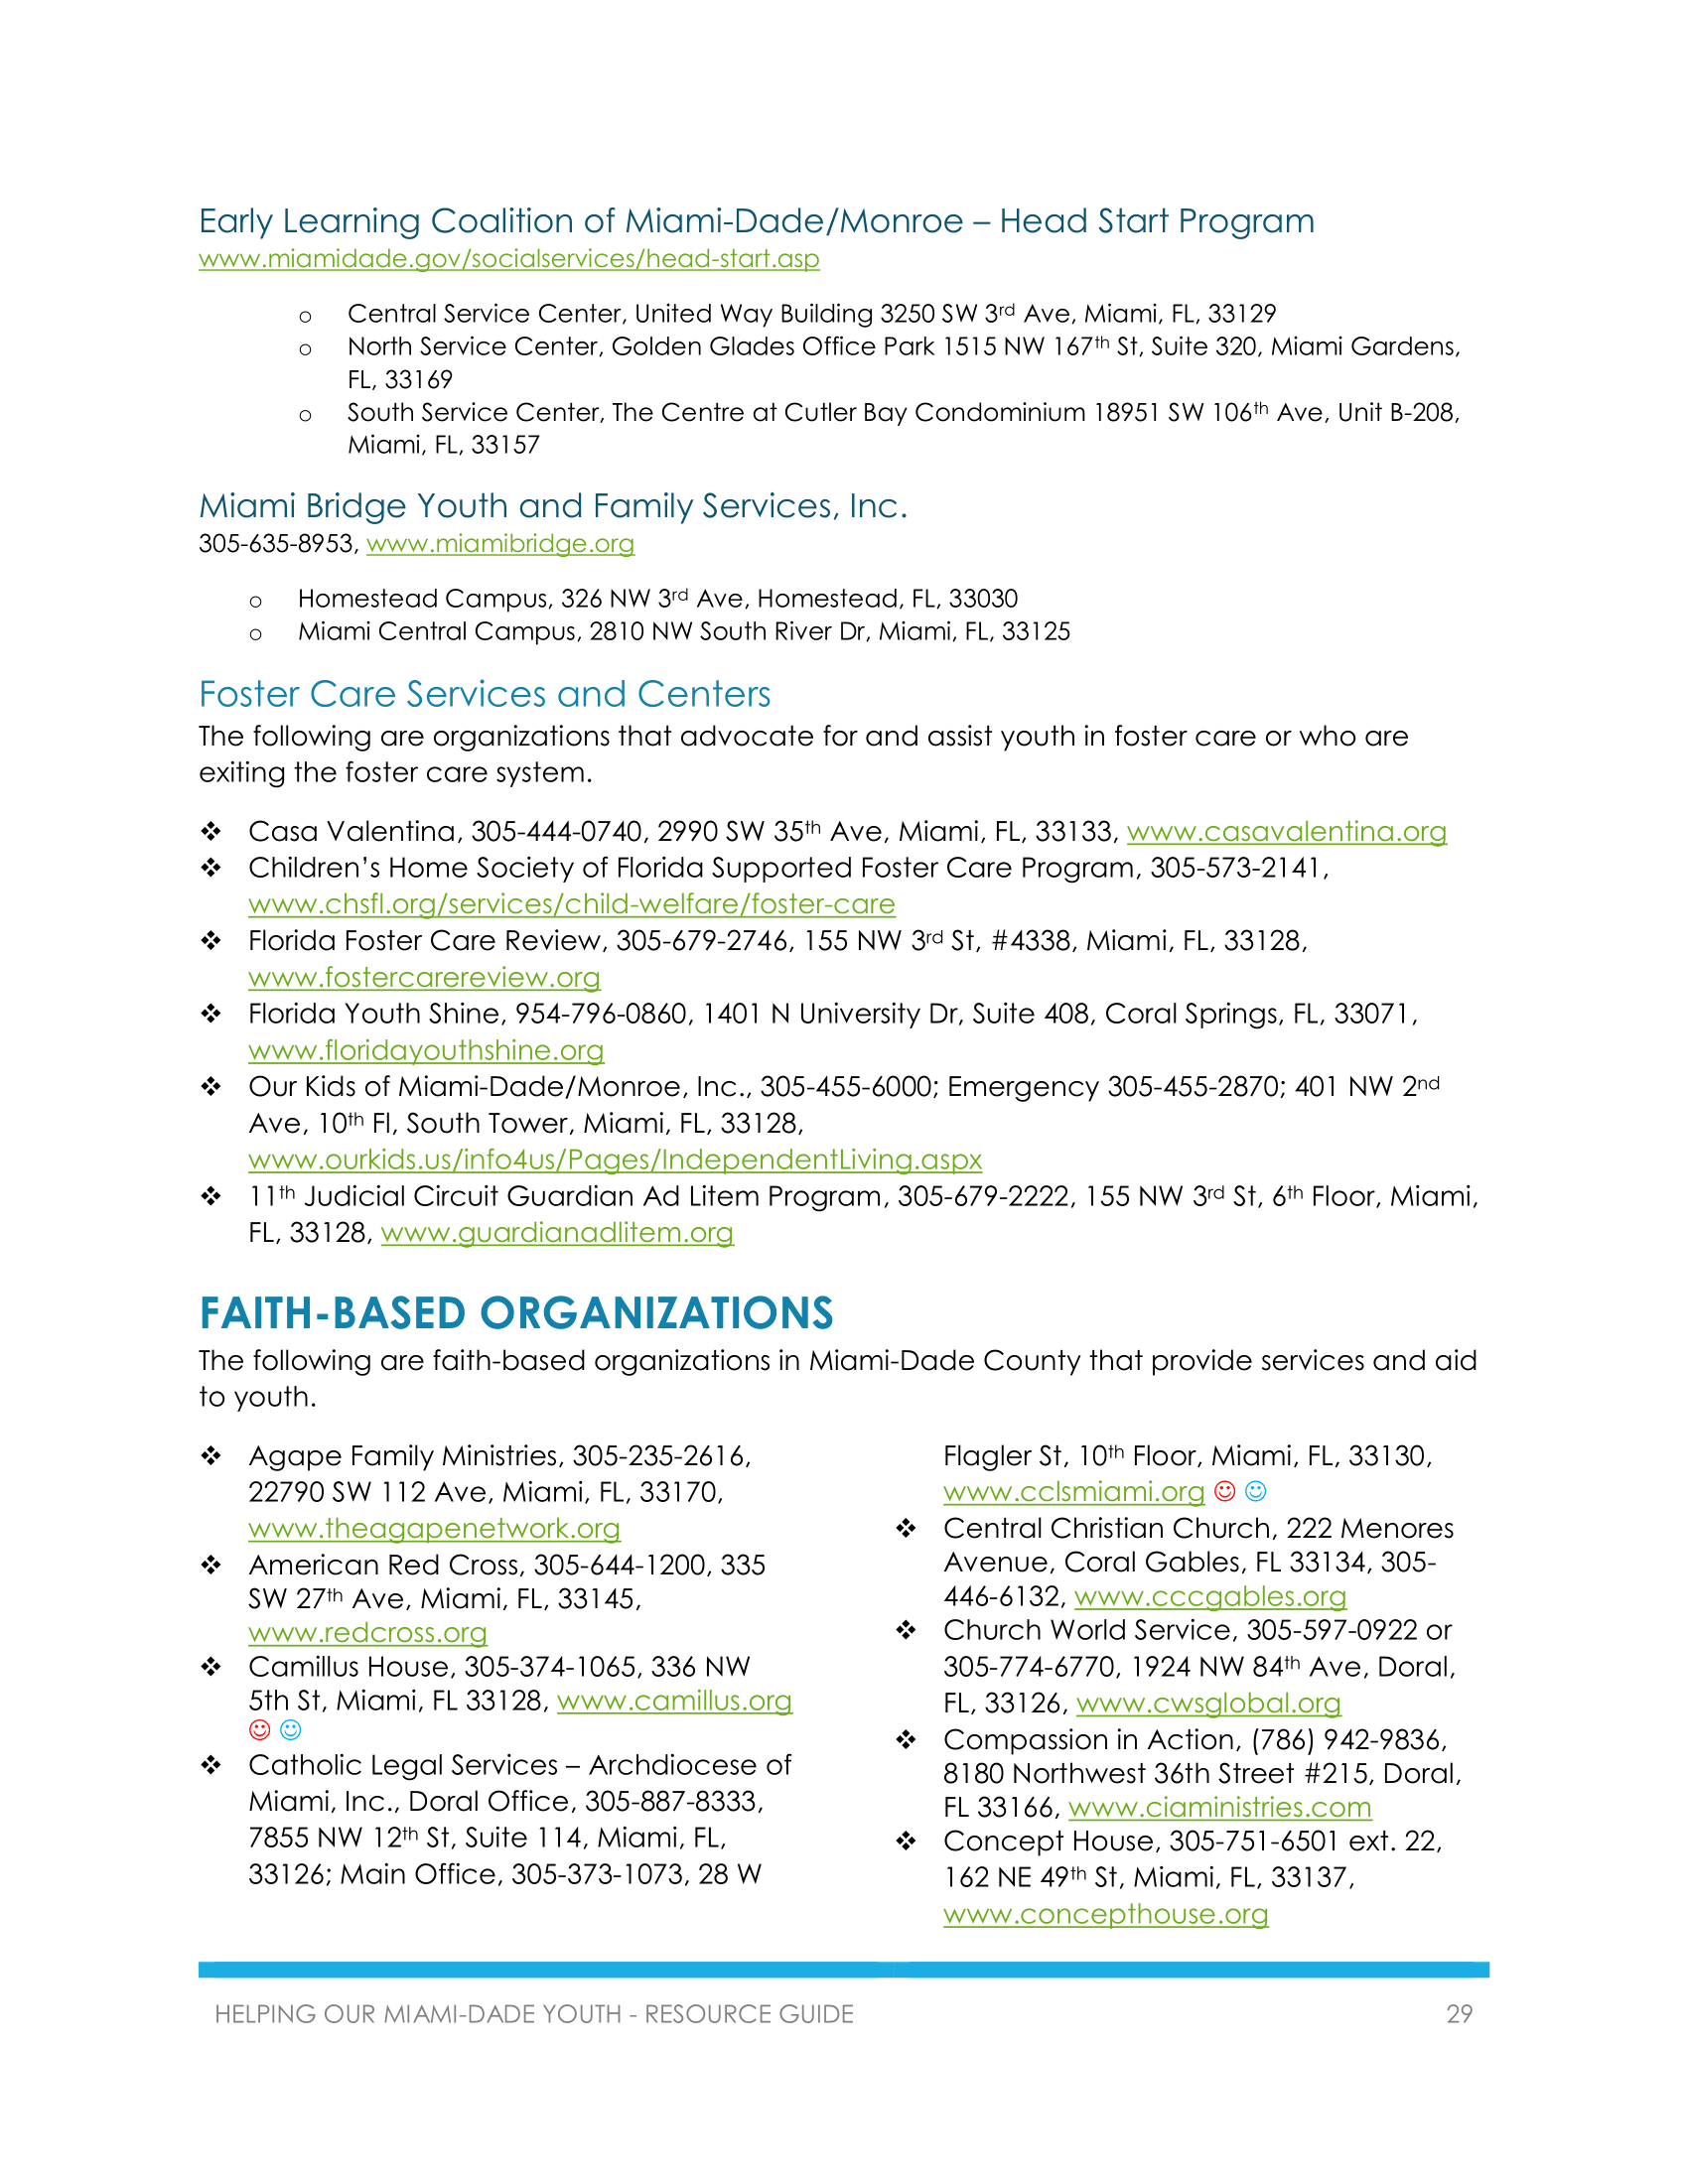 Youth Resource Guide - May 2018-34.png